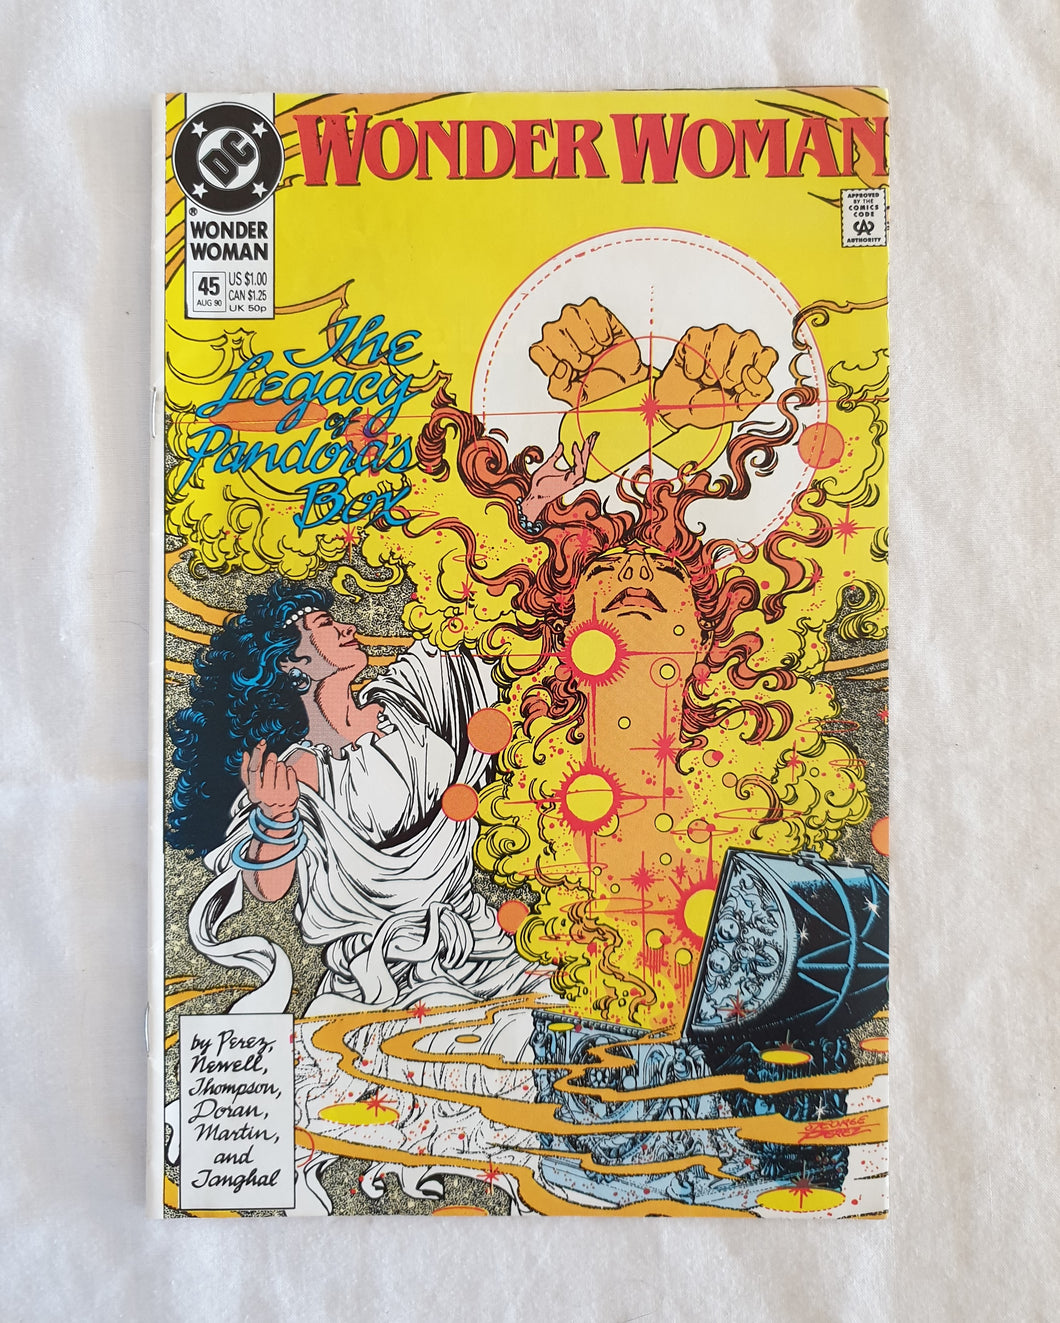 Wonder Woman #45 by George Perez and Mindy Newell - DC Comics